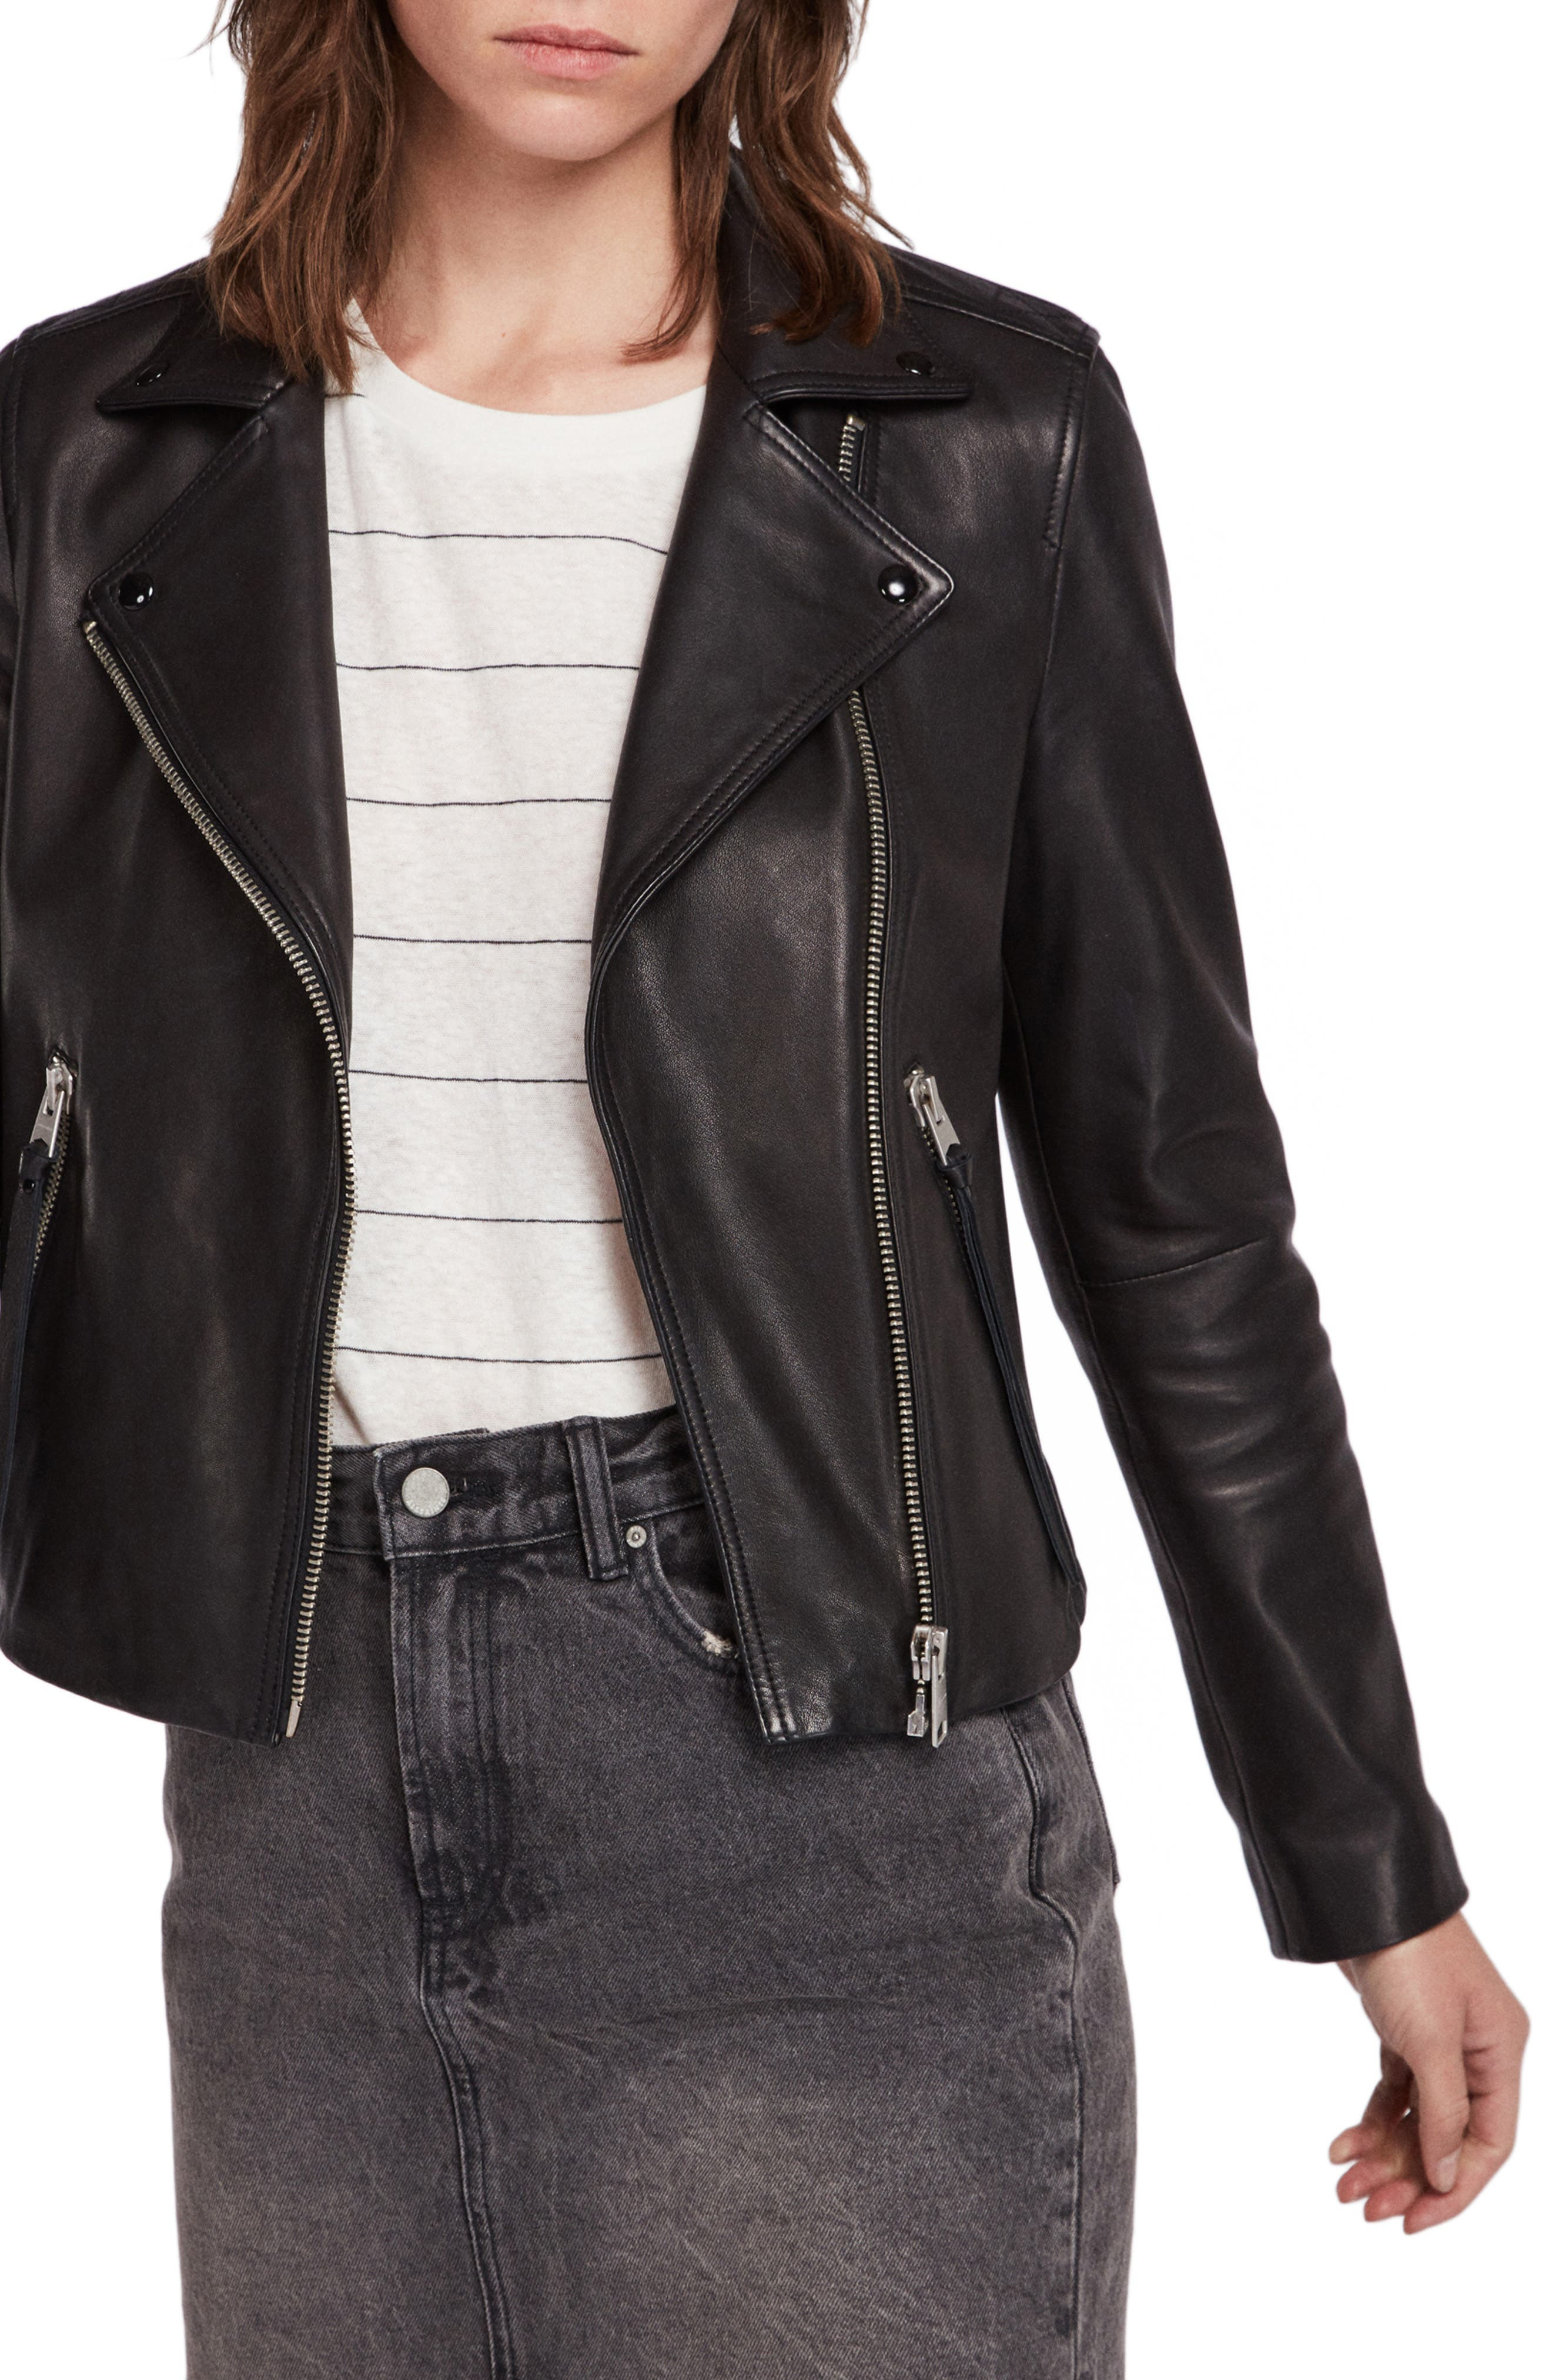 23497de394e Allsaints dalby biker jacket main color black jpg 780x1196 Biker jacket